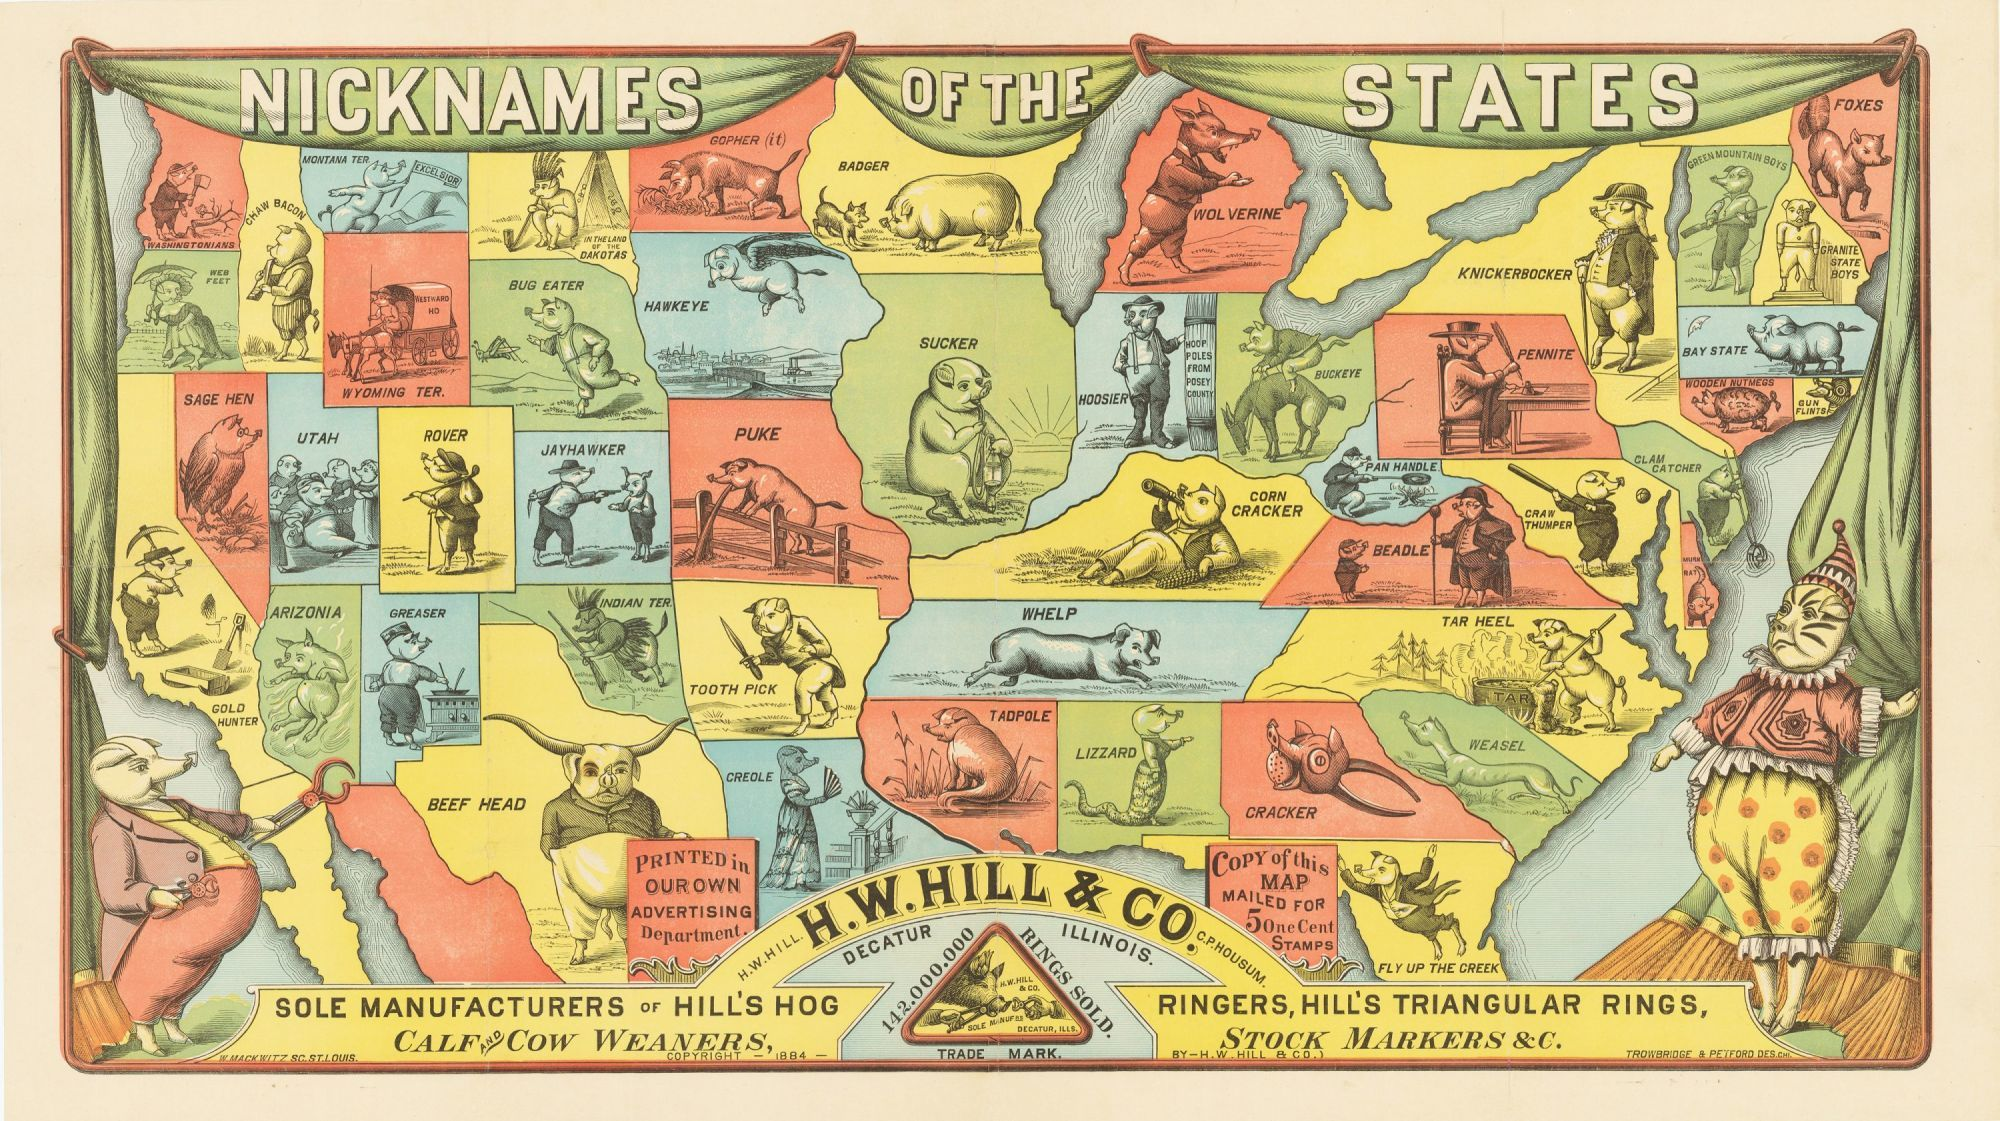 Map: Nicknames of the States